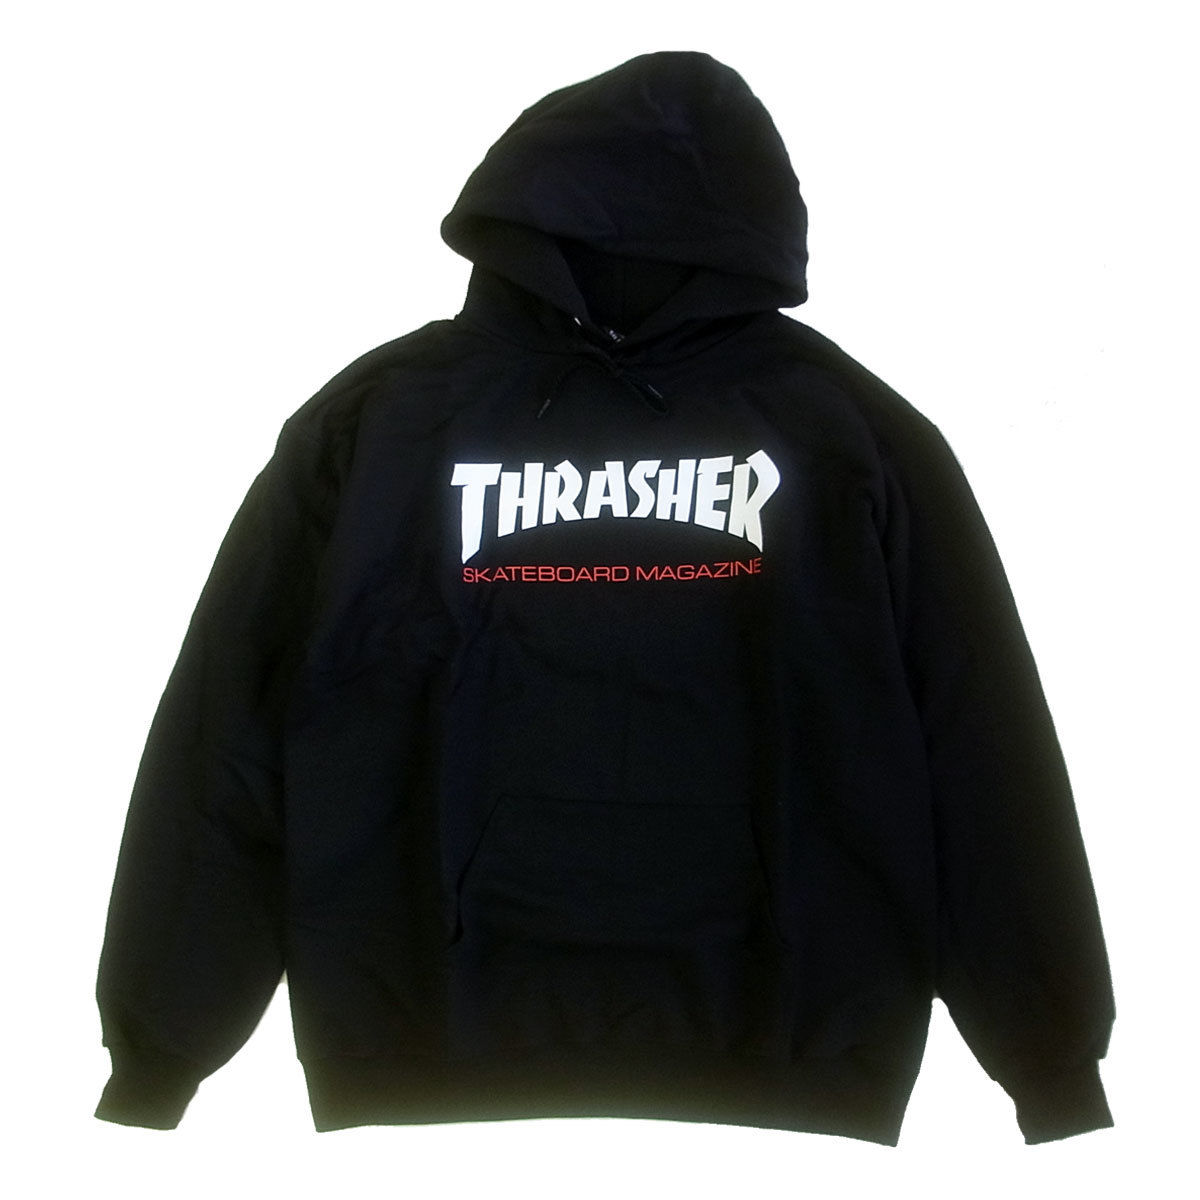 THRASHER TWO-TONE SKATE MAG HOOD BLACK スラッシャー パーカー